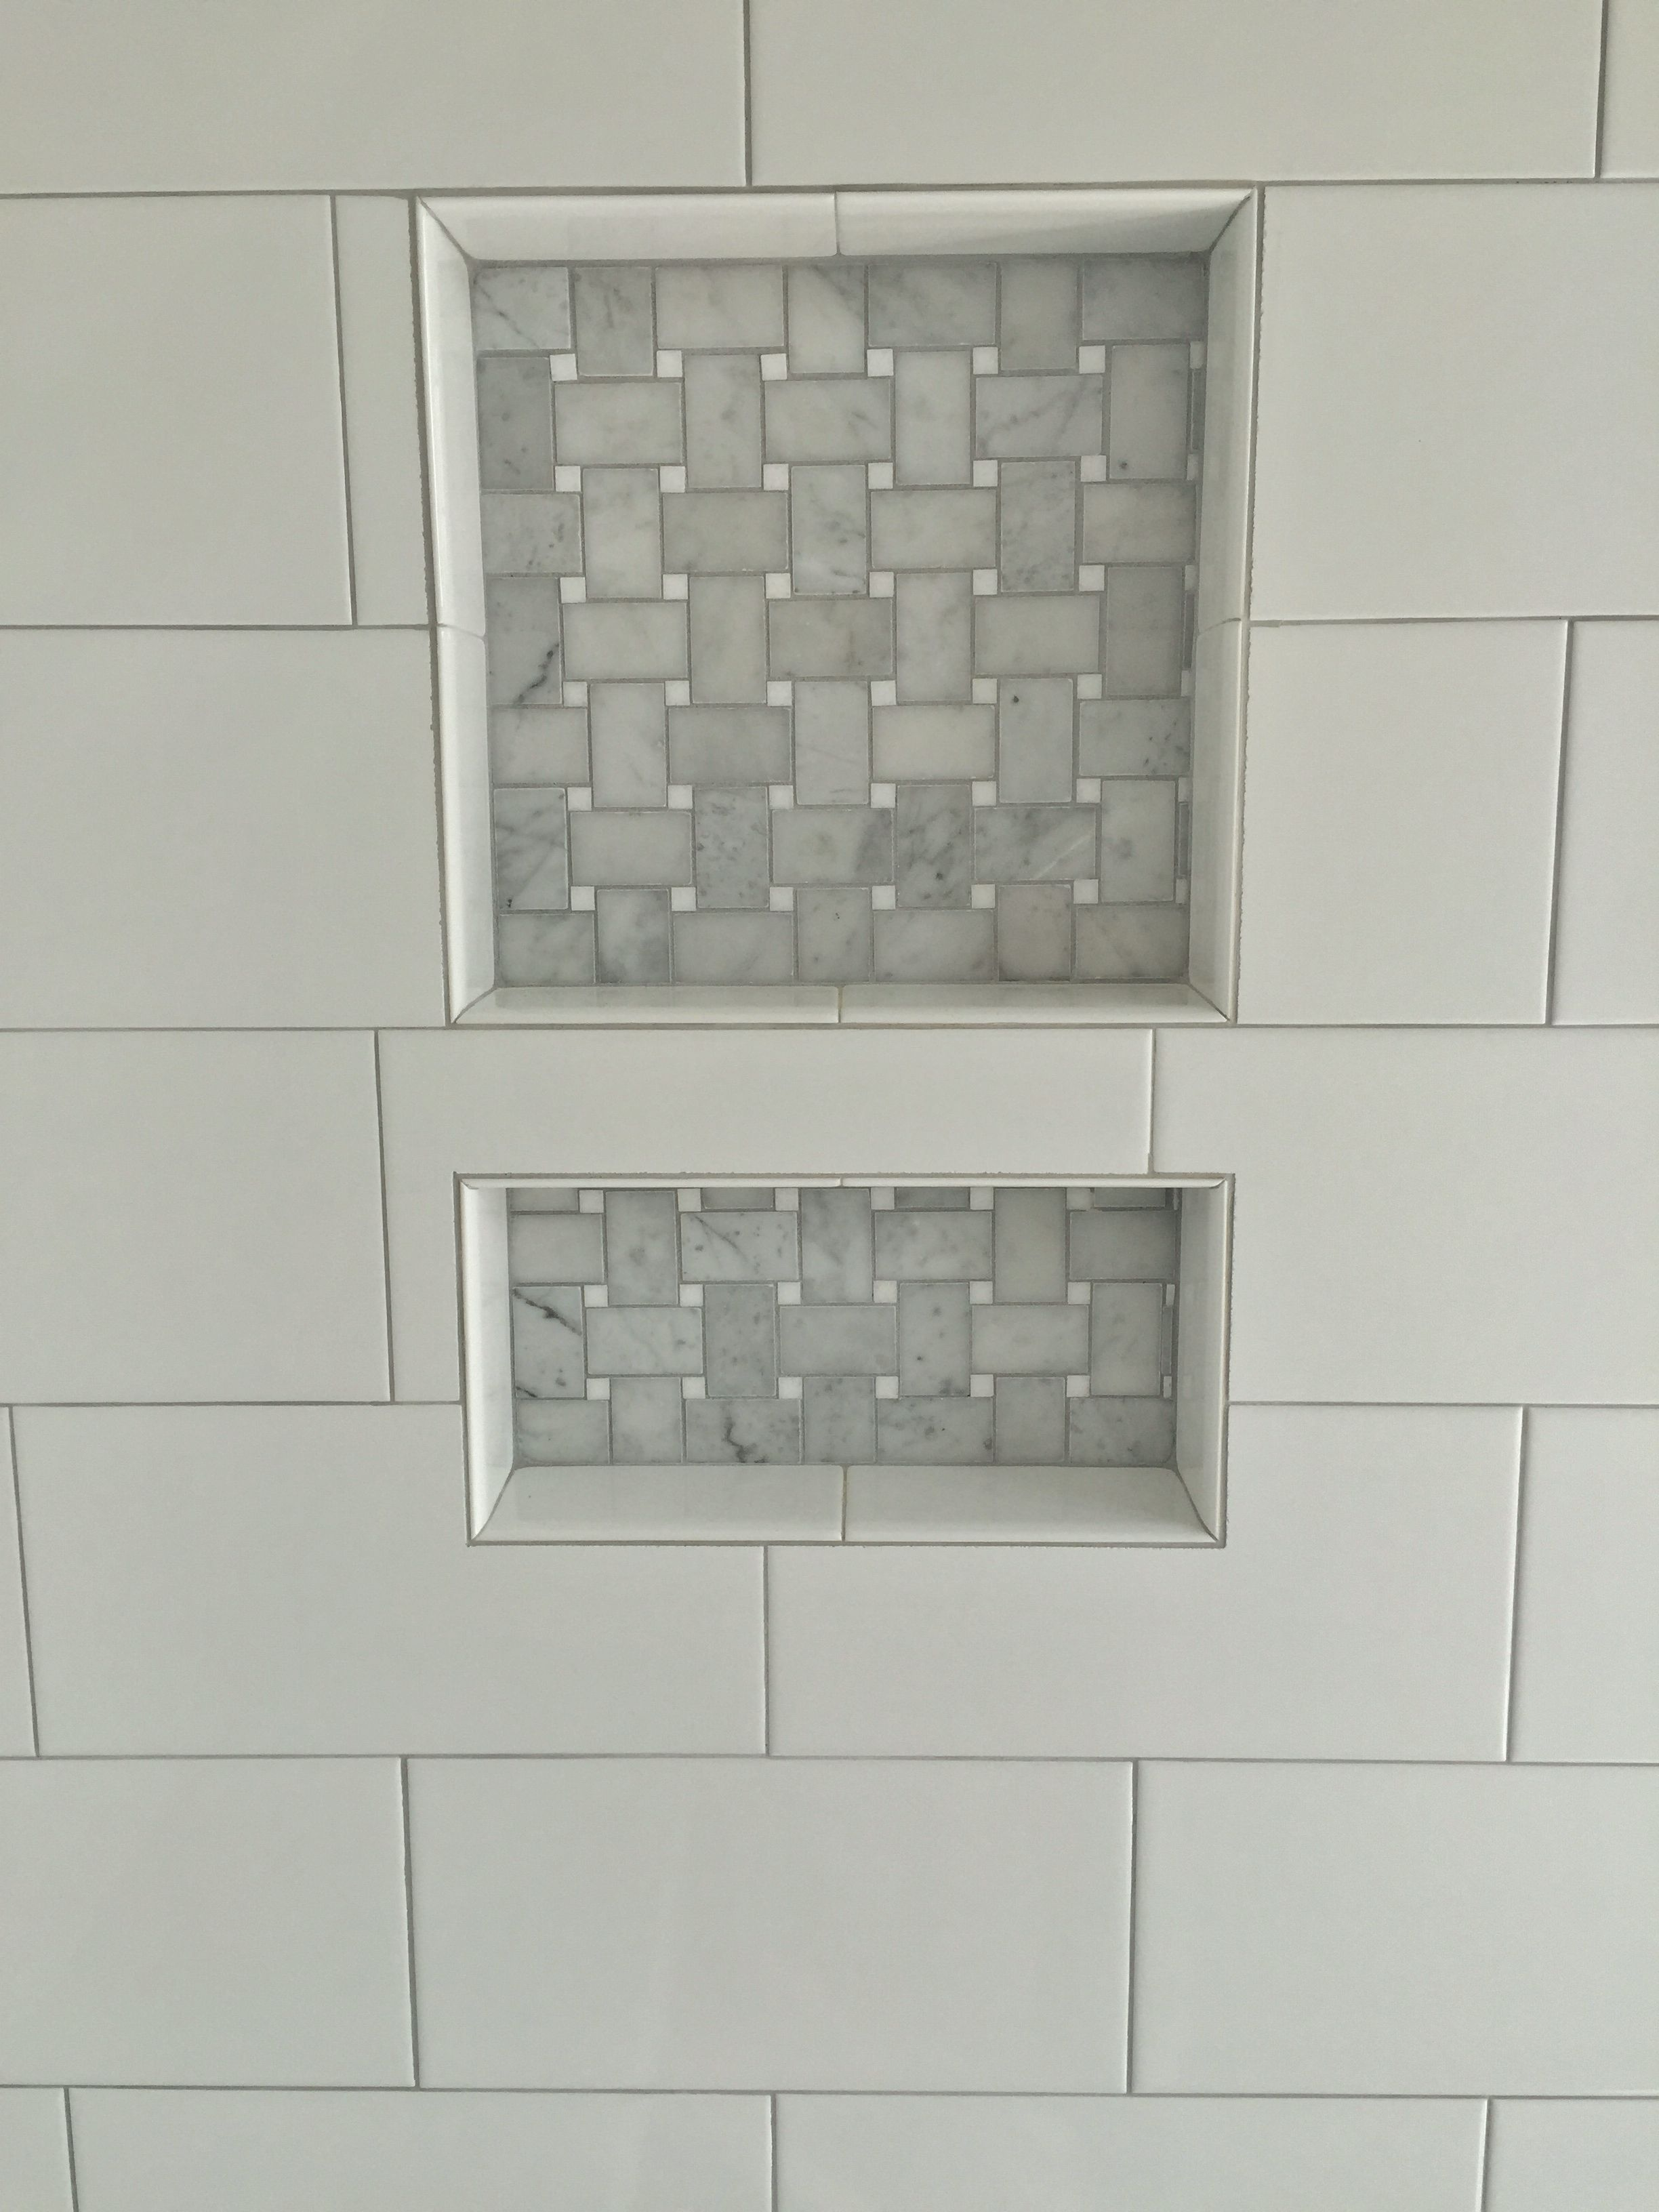 X White Porcelain Tile With Stone Basketweave Accent In Niche - 6 x 12 white porcelain tile